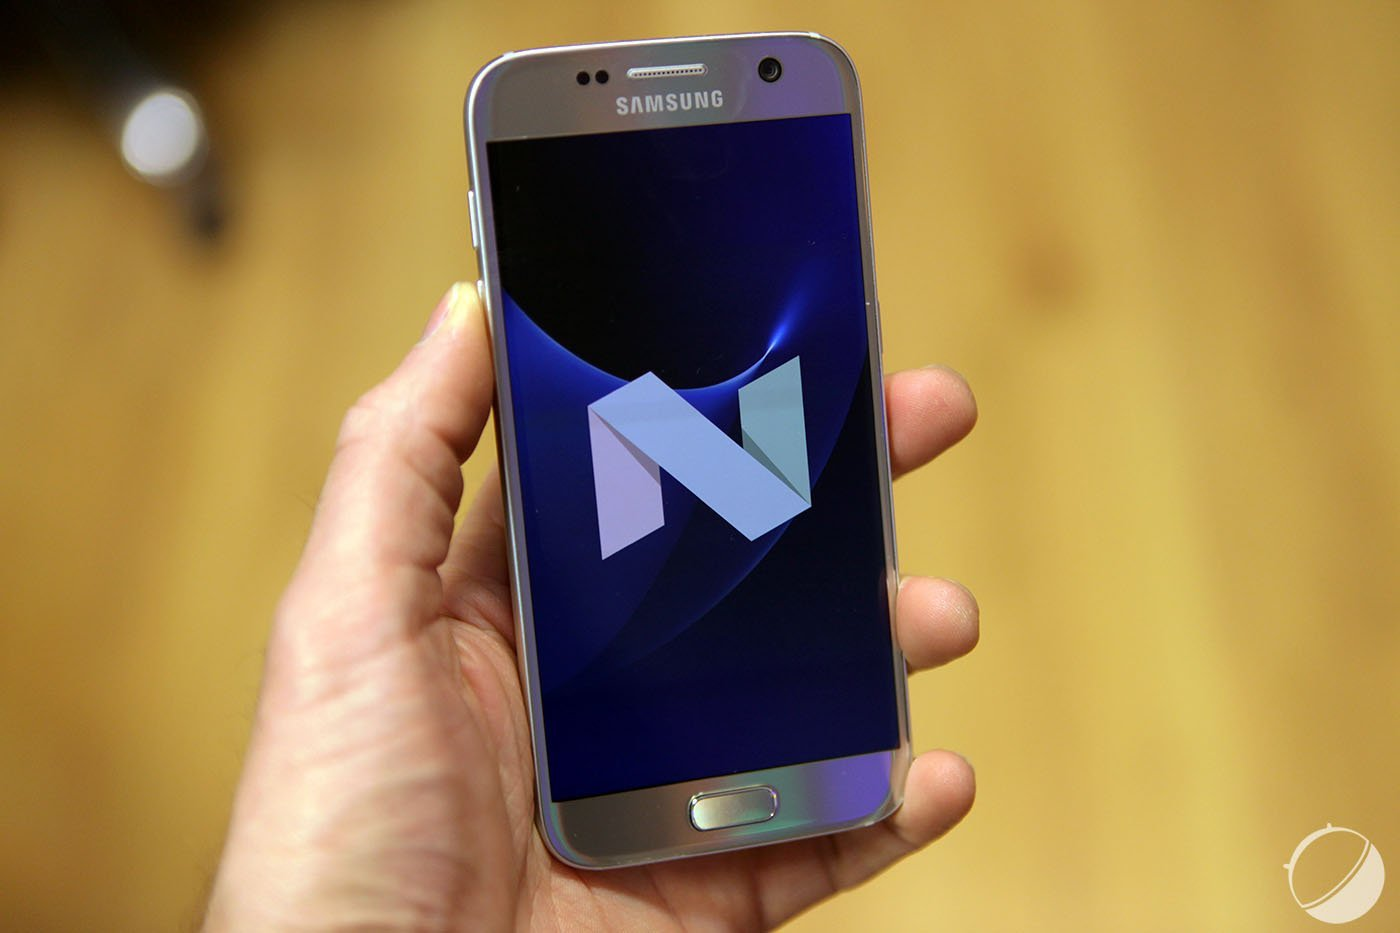 Samsung Galaxy S7 et S7 edge : Comment installer Android 7.0 Nougat ? – Tutoriel